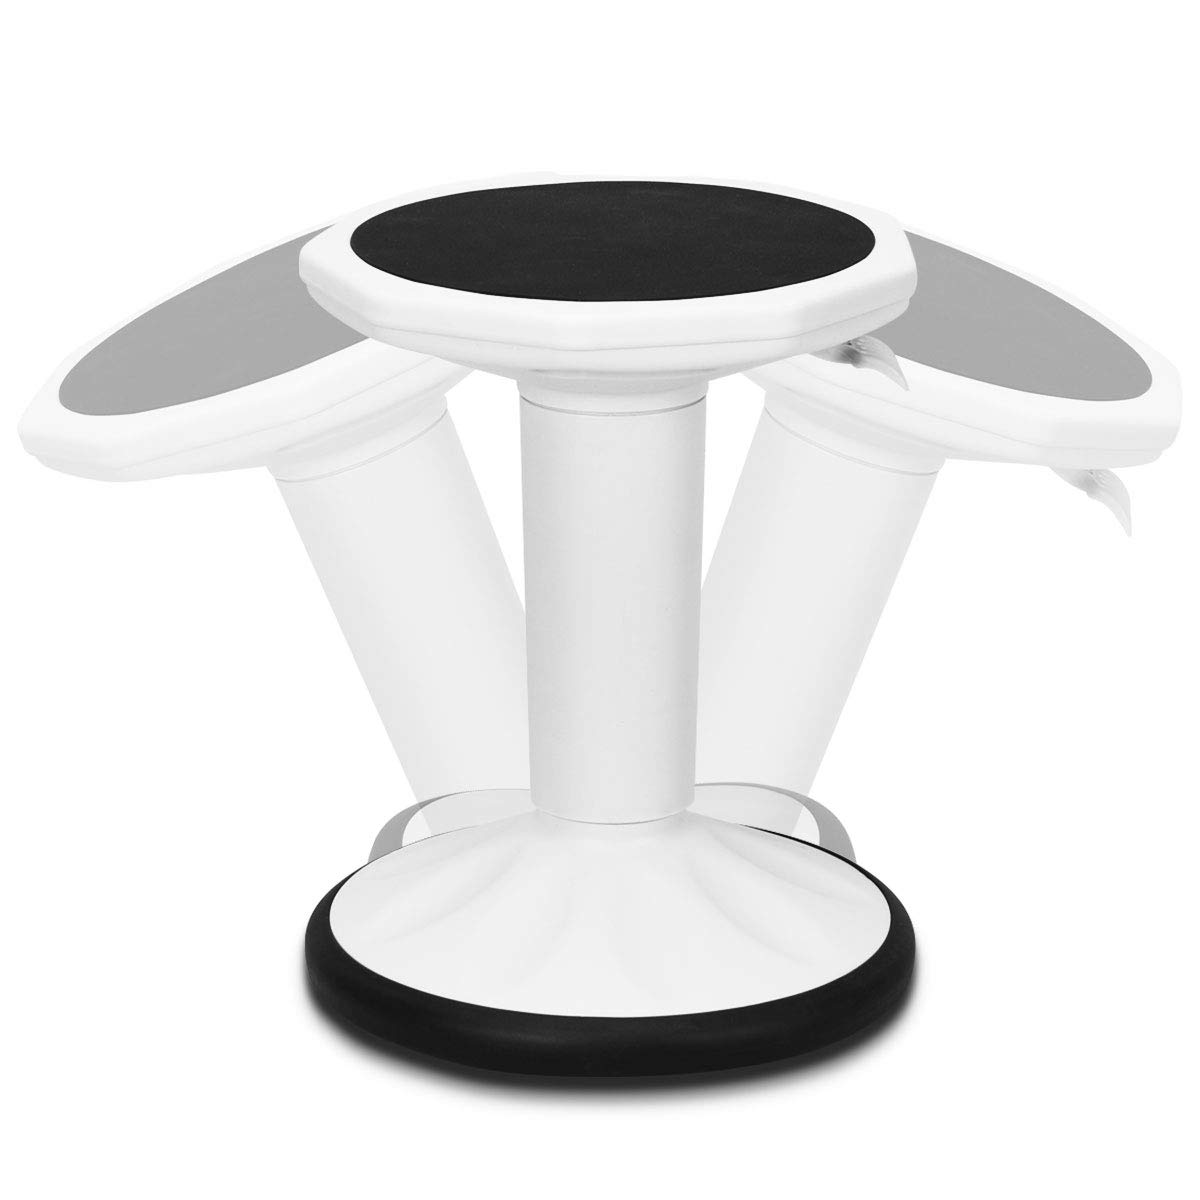 Giantex Wobble Chair Adjustable-Height Active Learning Stool Sitting Balance Chair for Office Stand Up Desk (White) by Giantex